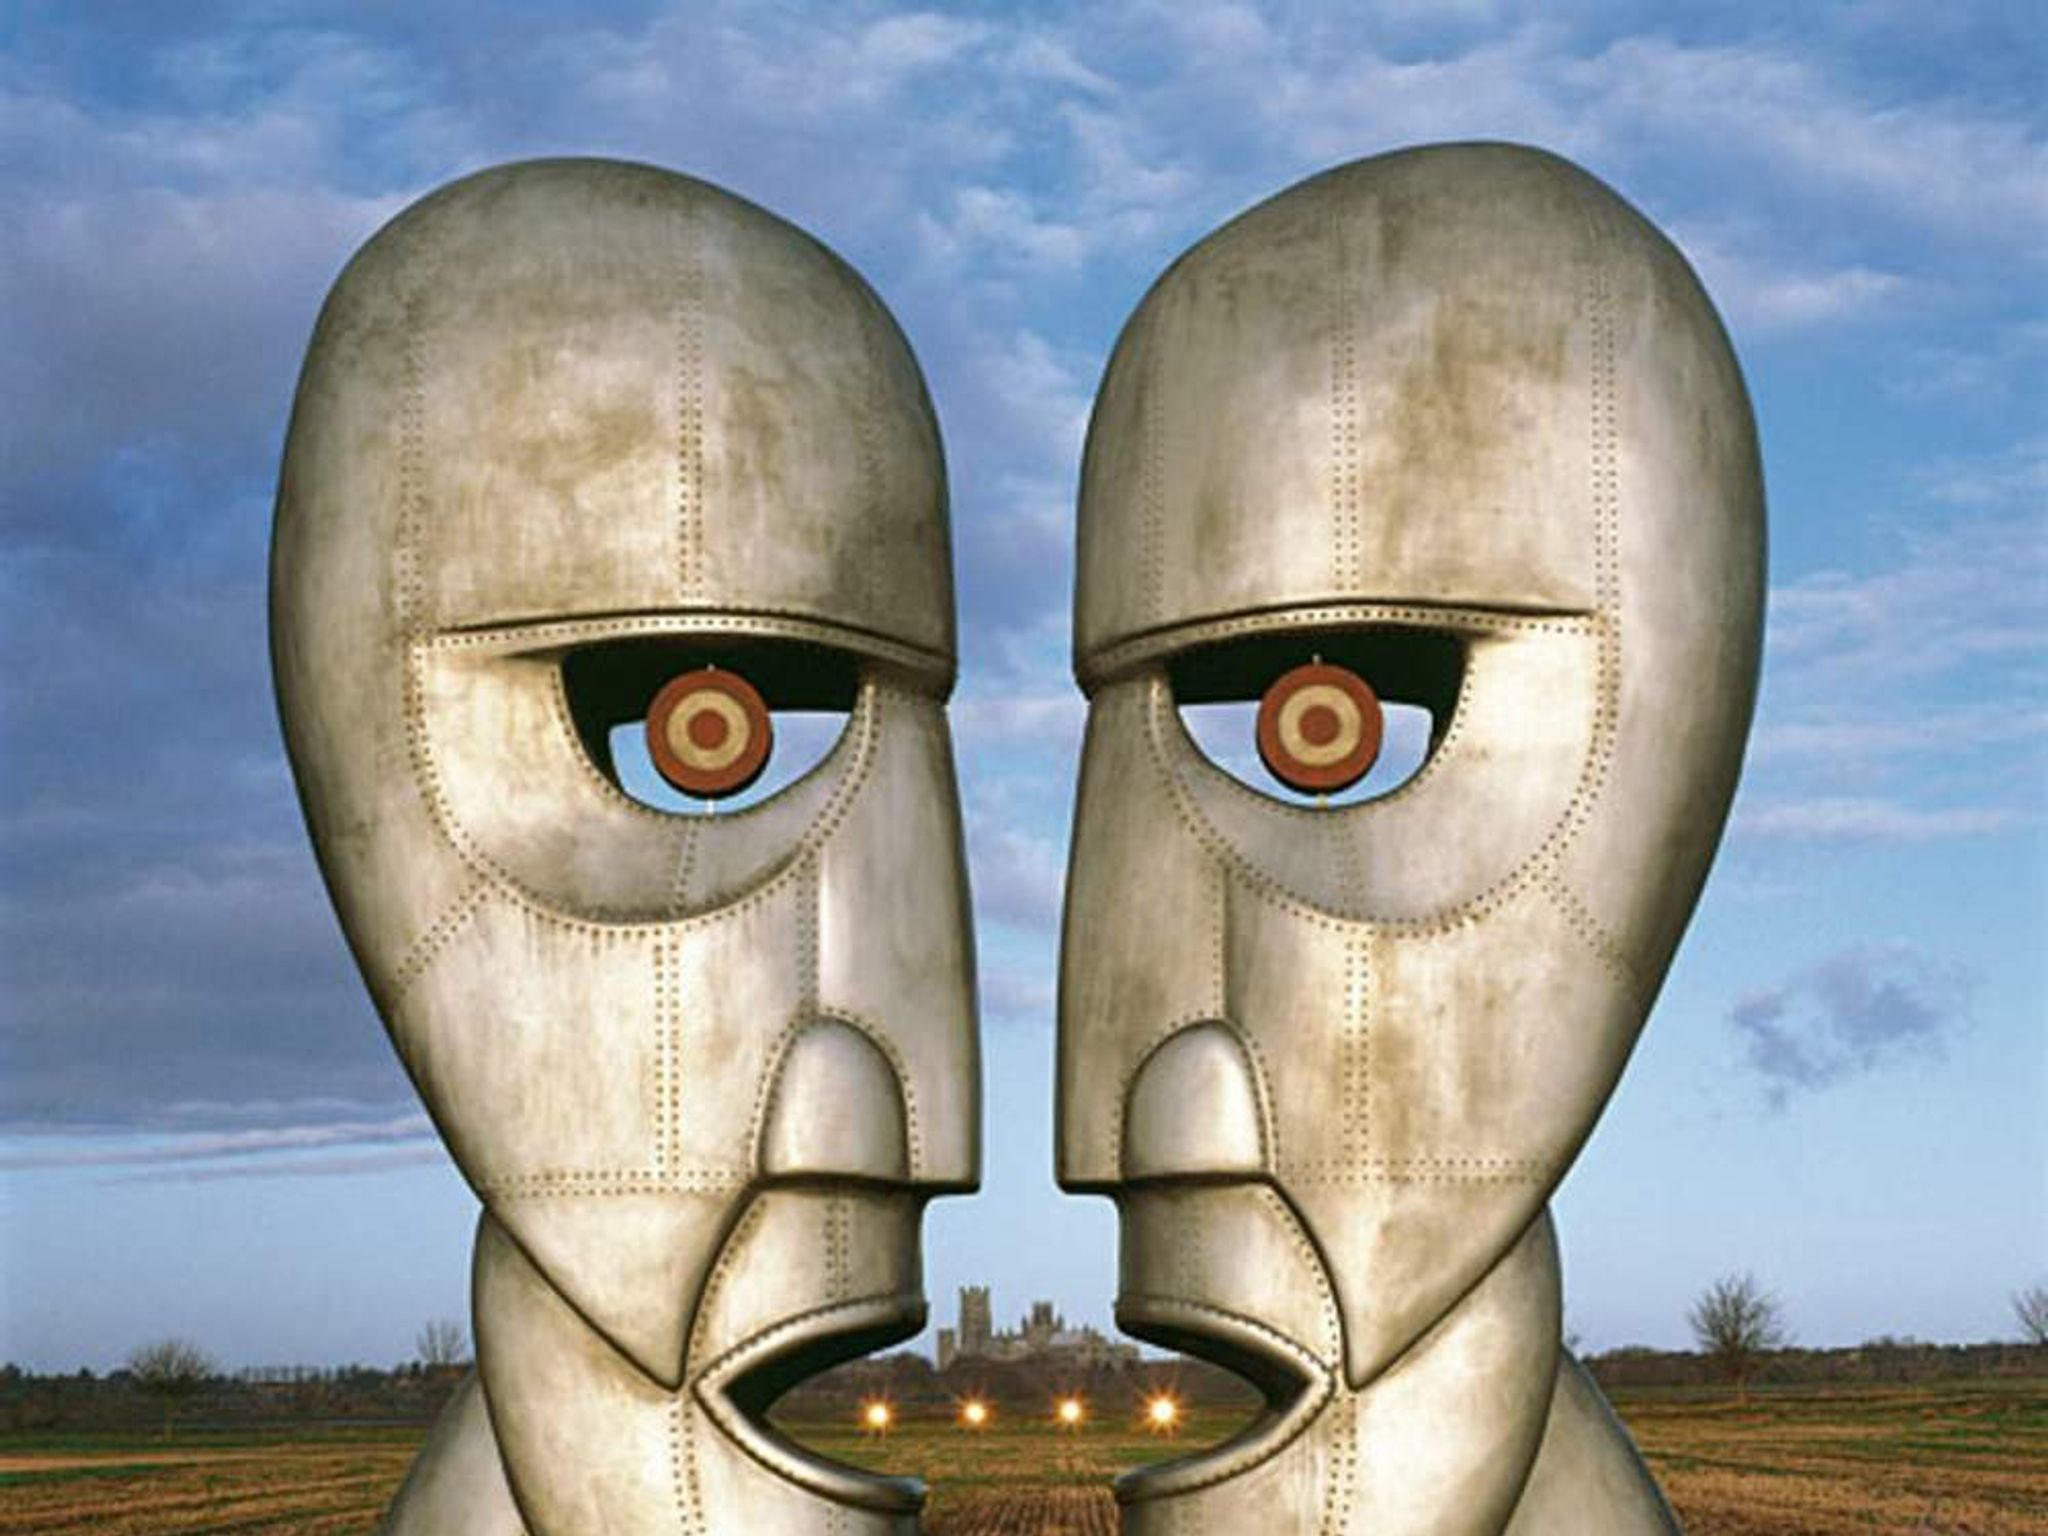 This Site Contains All Information About Landscape Artwork Pink Floyd The Division Bell Sculptures